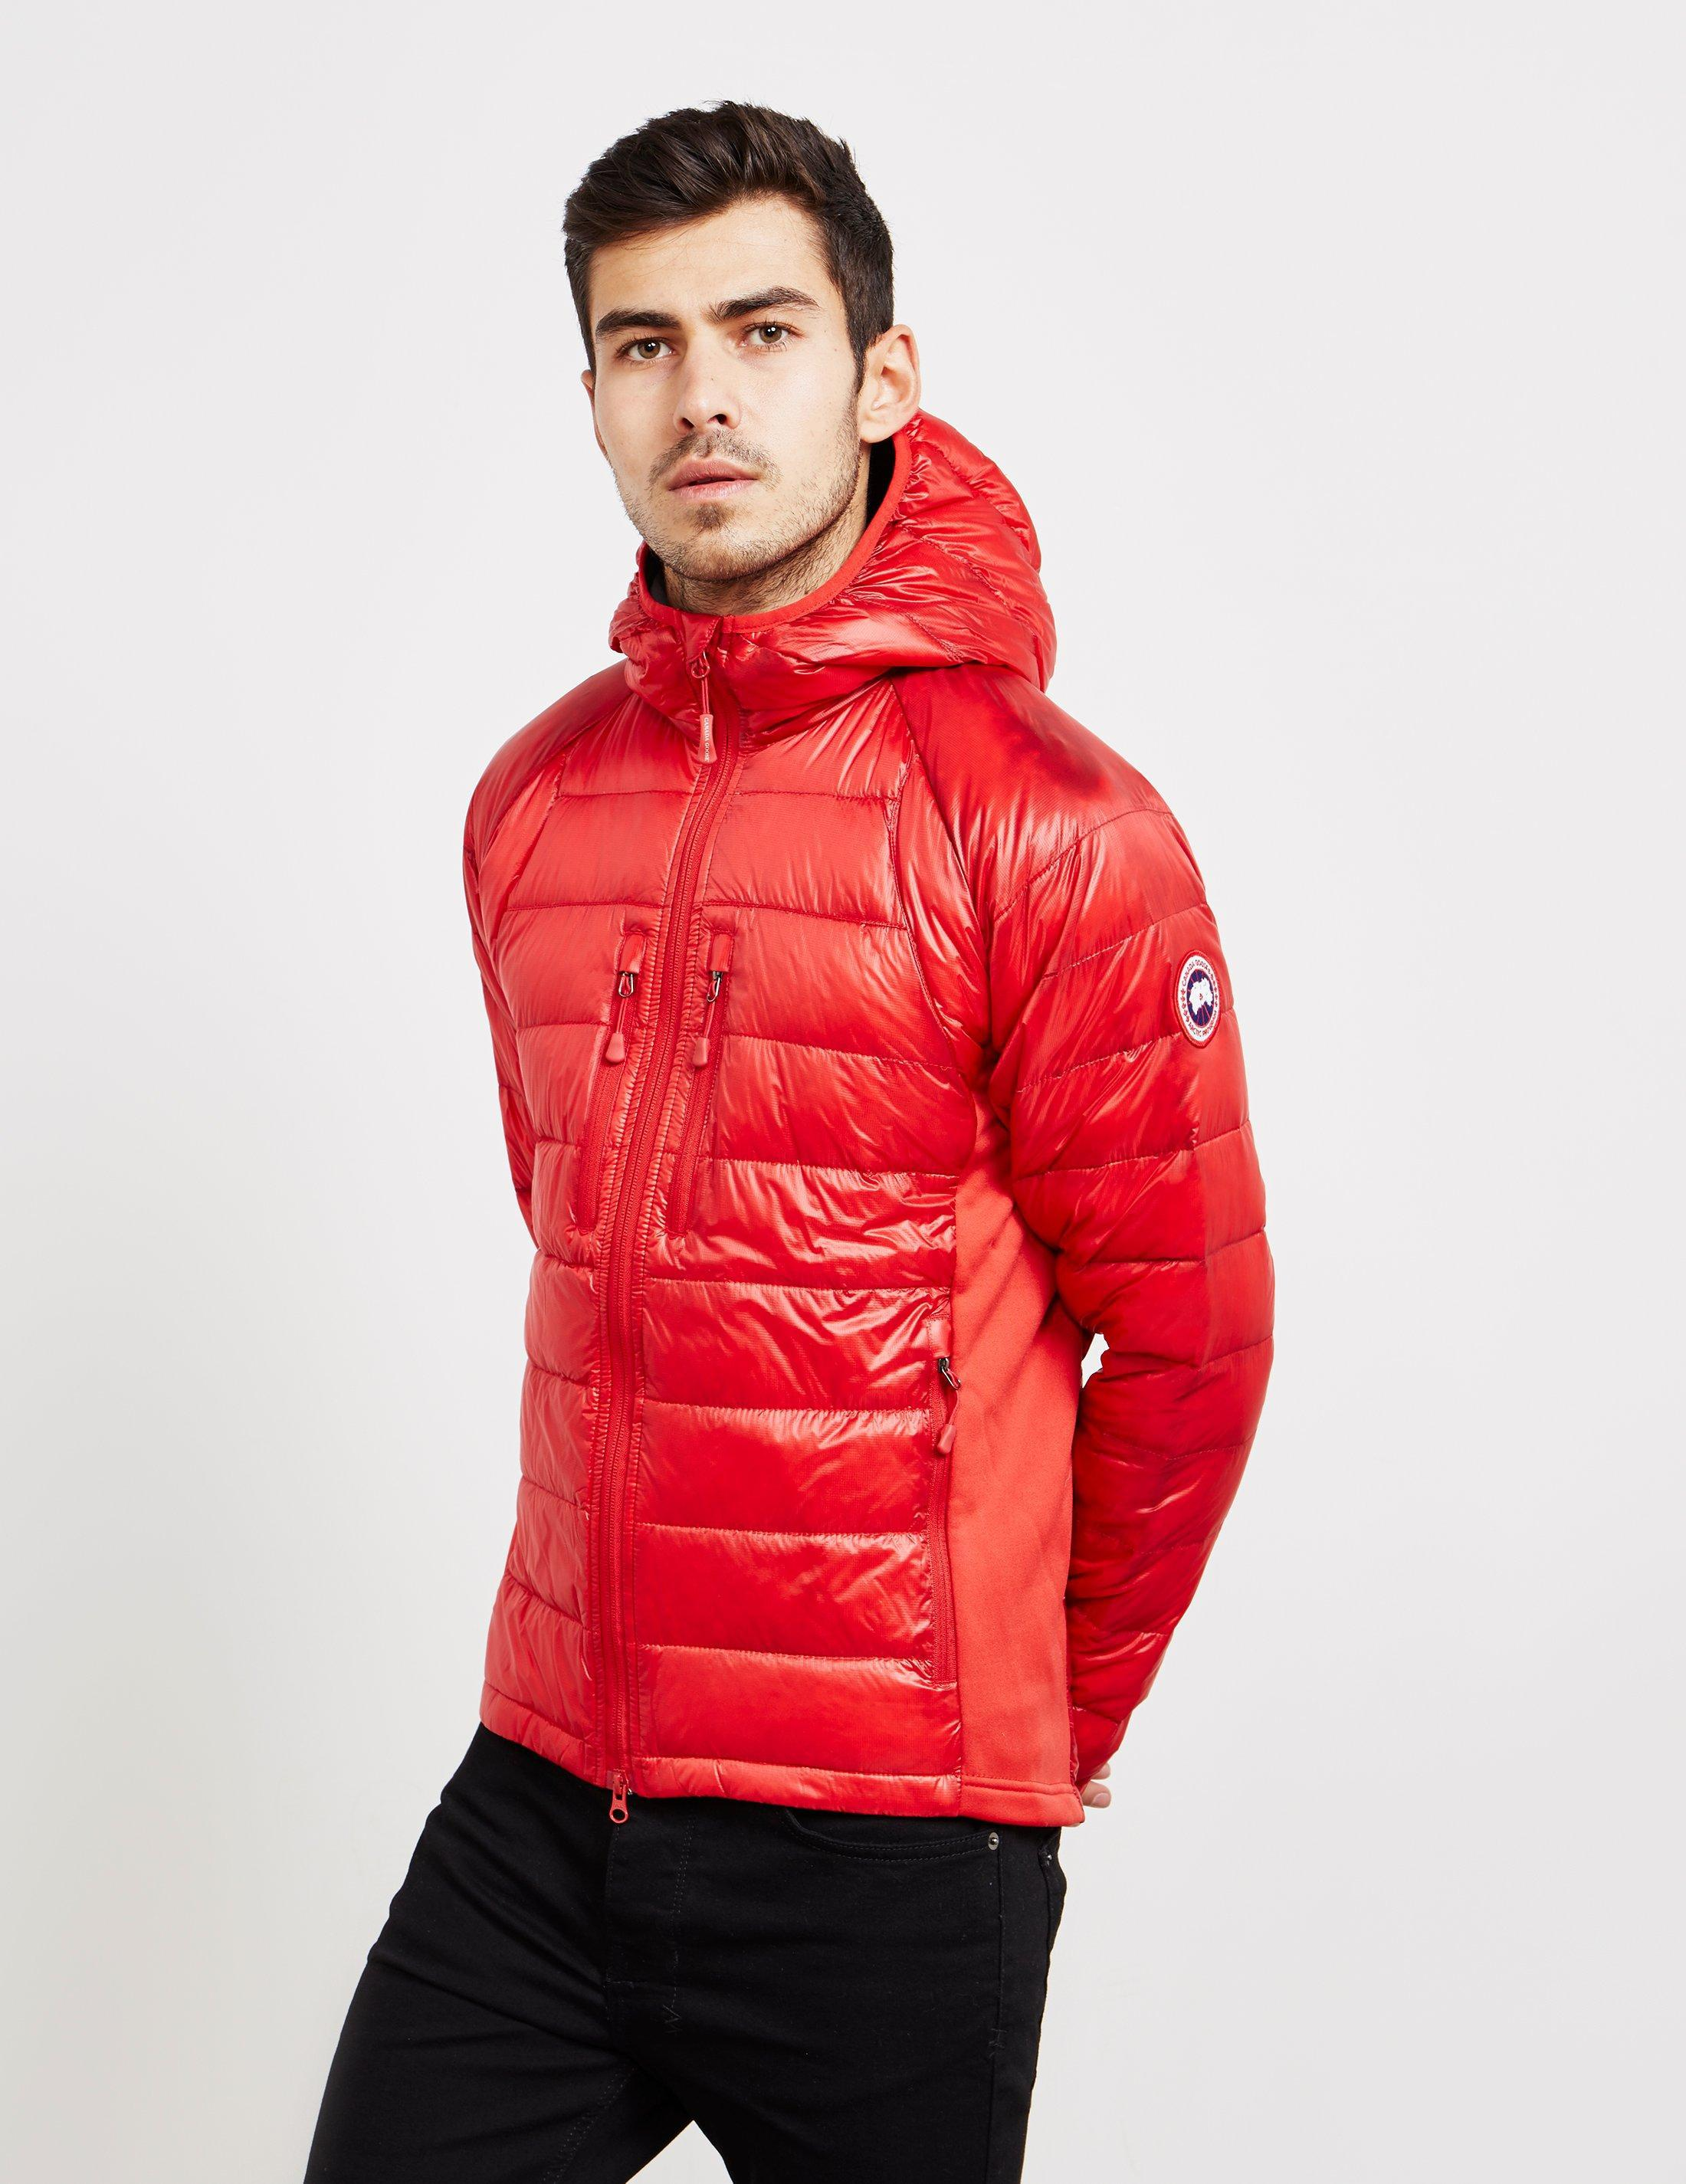 7b156161bb17 Canada Goose Mens Hybridge Lightweight Jacket Red in Red for Men - Lyst